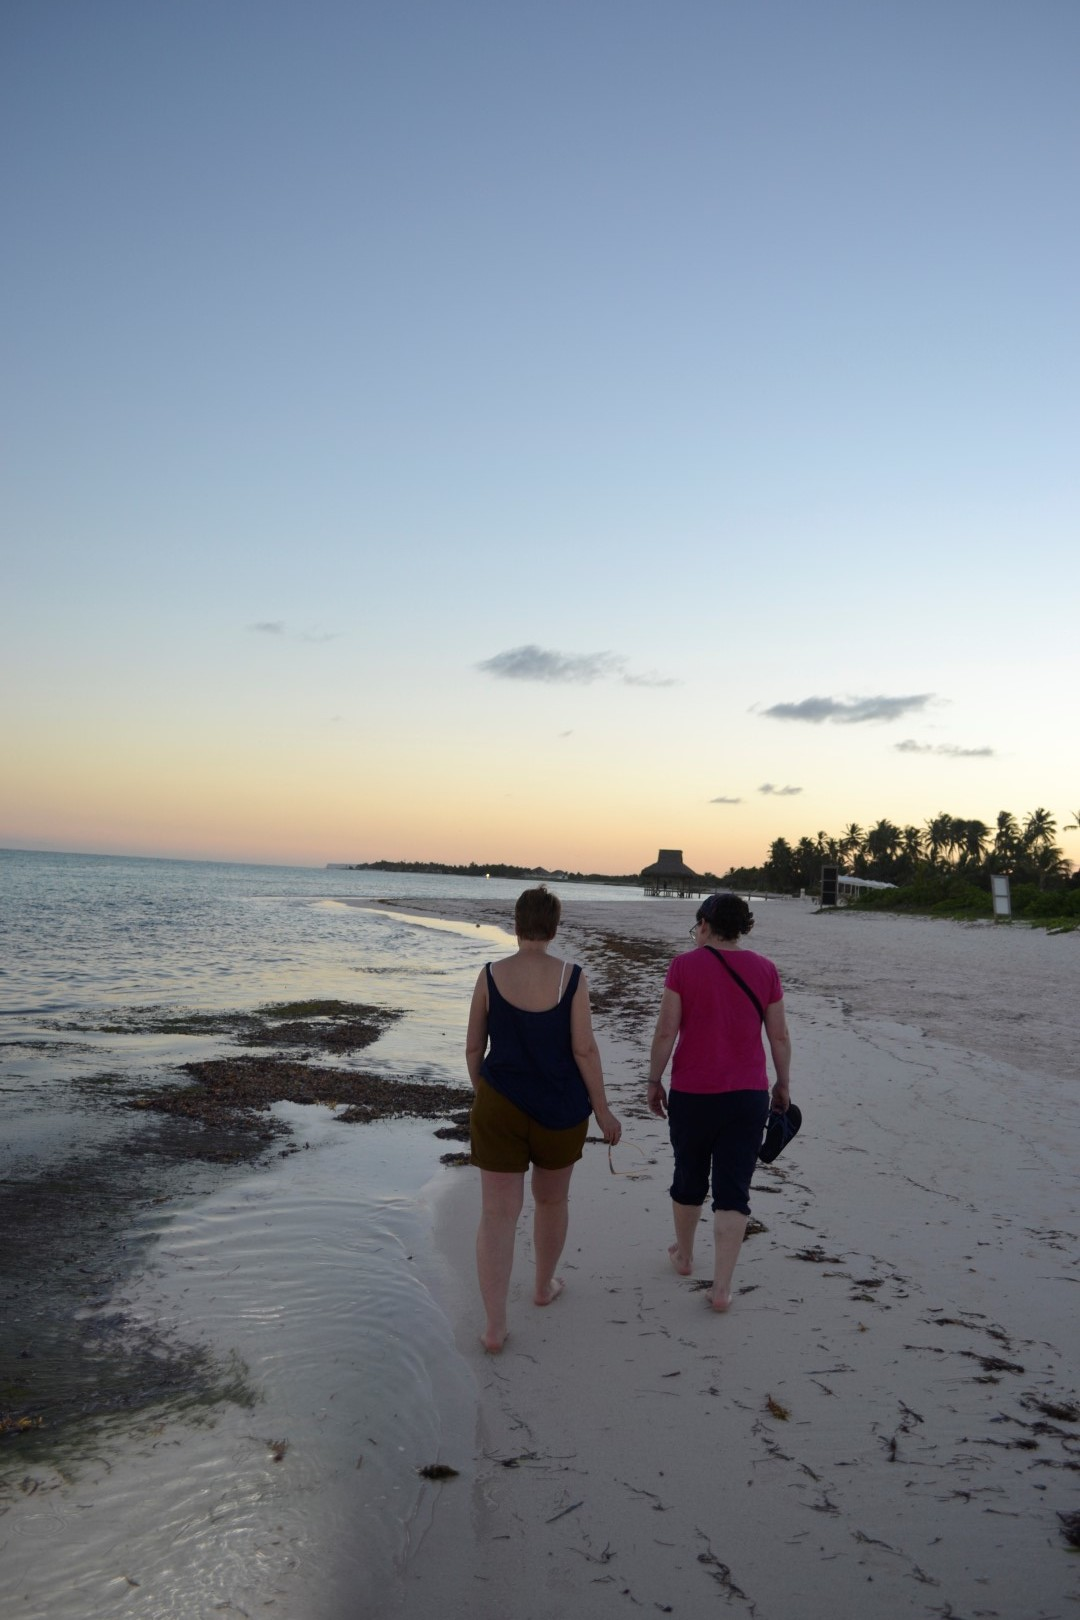 self and friend, walking the beach in the Dominican Republic  (photo:  Andy Bruner)